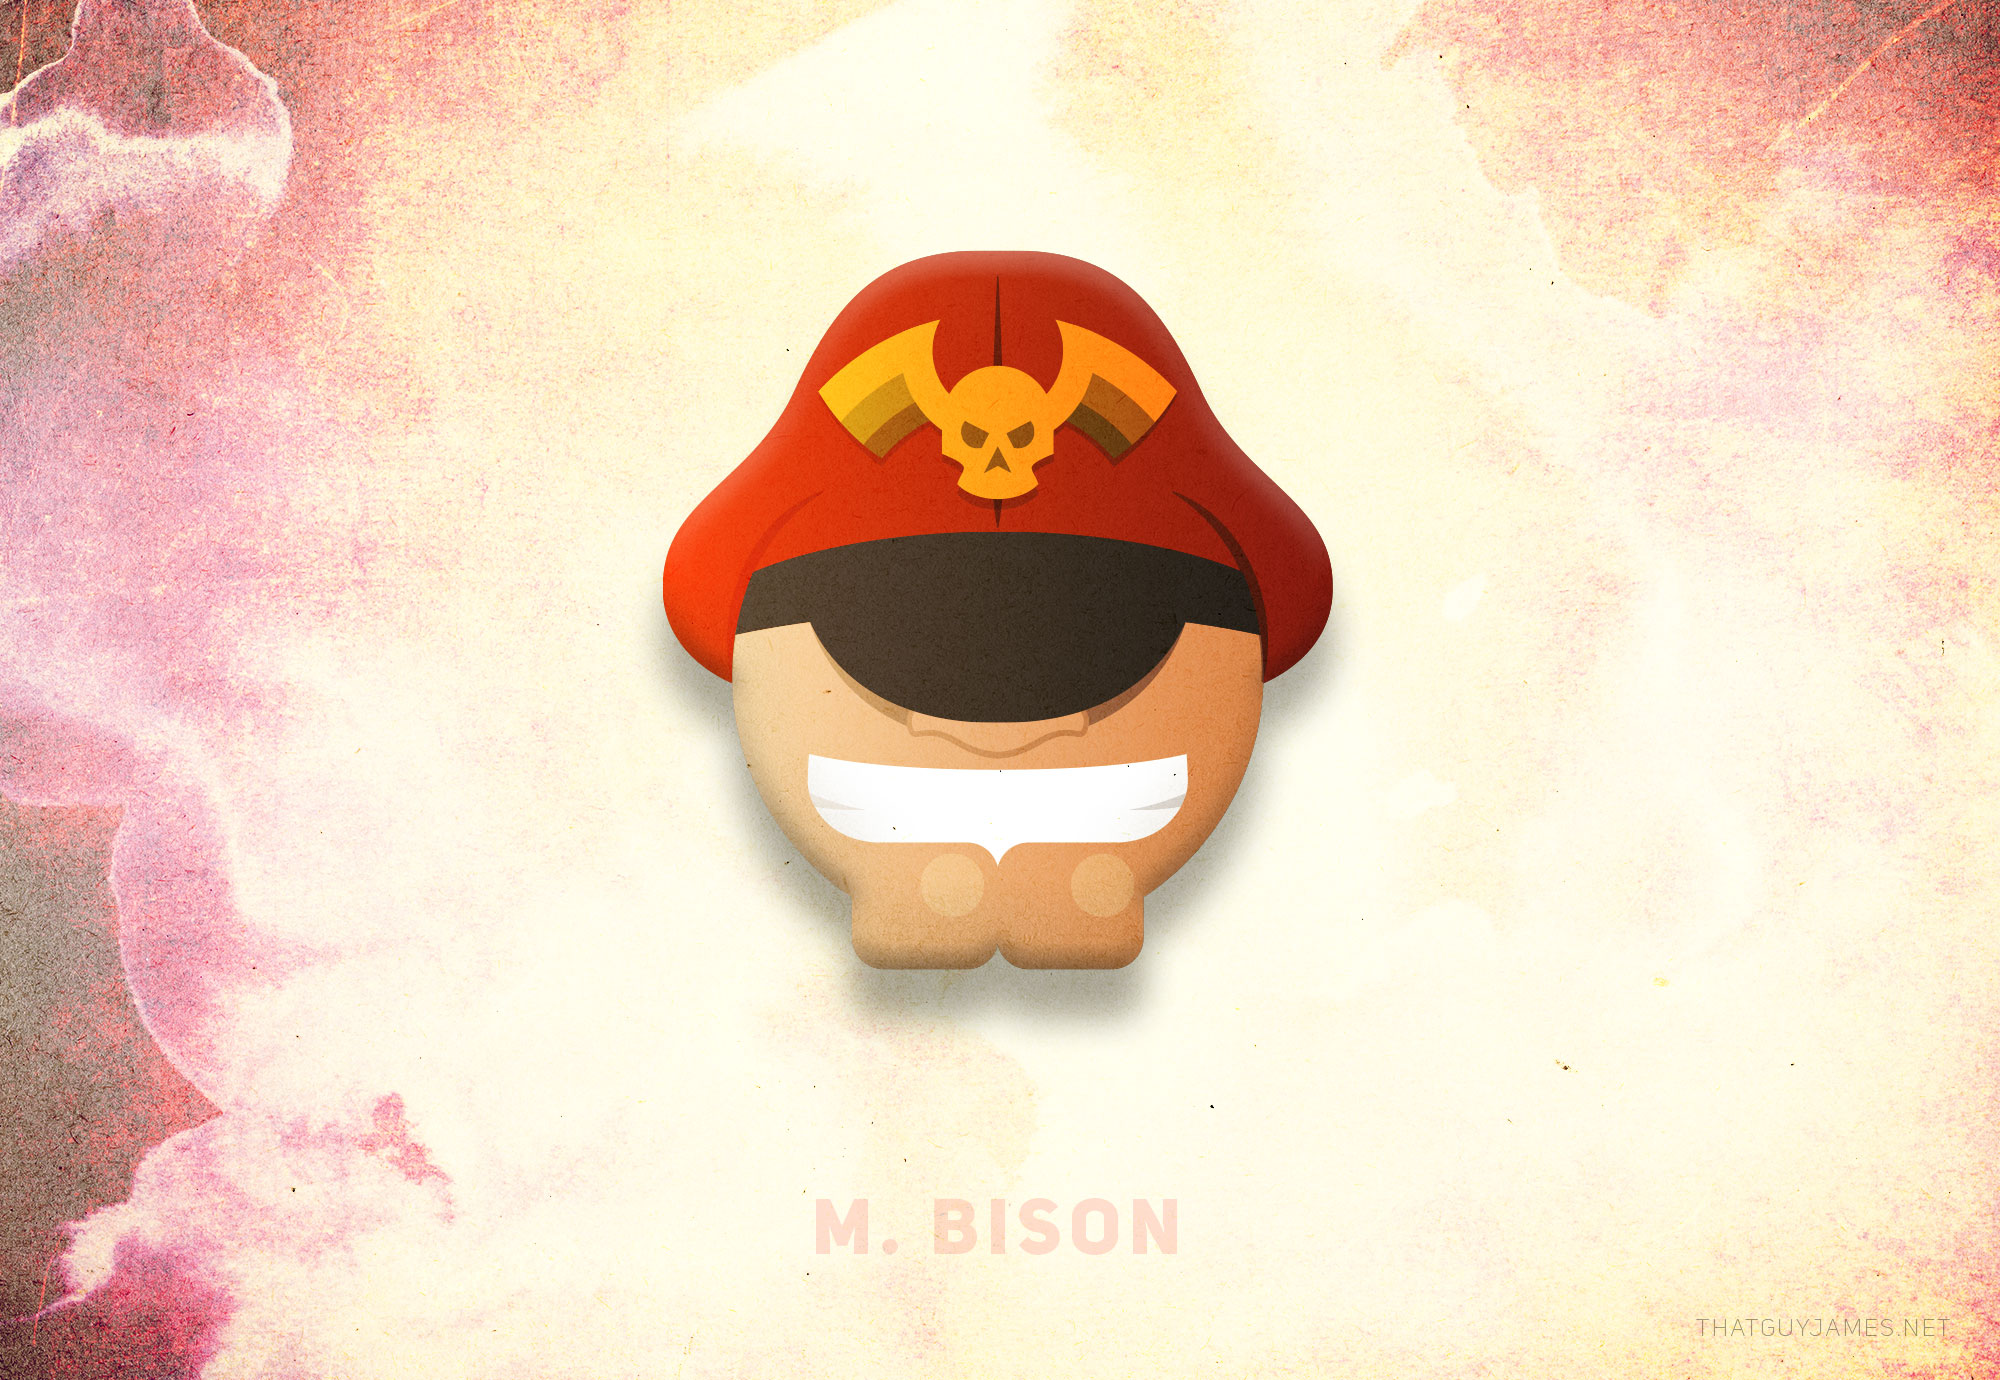 M. Bison represented the biggest learning curve for me on the project. I had started out with a much more accurate representation for each character, but quickly realized the style did not allow for superfluous information. Some things just don't matter with these characters. With M. Bison, everything from the bridge of the nose up to the beginning of the cap is largely irrelevant information. He has no pupils, sure, but half the characters in this game don't either.   This got me thinking like a caricaturist: pick the most prominent unique features and blow them way out of proportion to make the character 'read' correctly. Giant chin, giant hat, giant teeth; you know who it is.